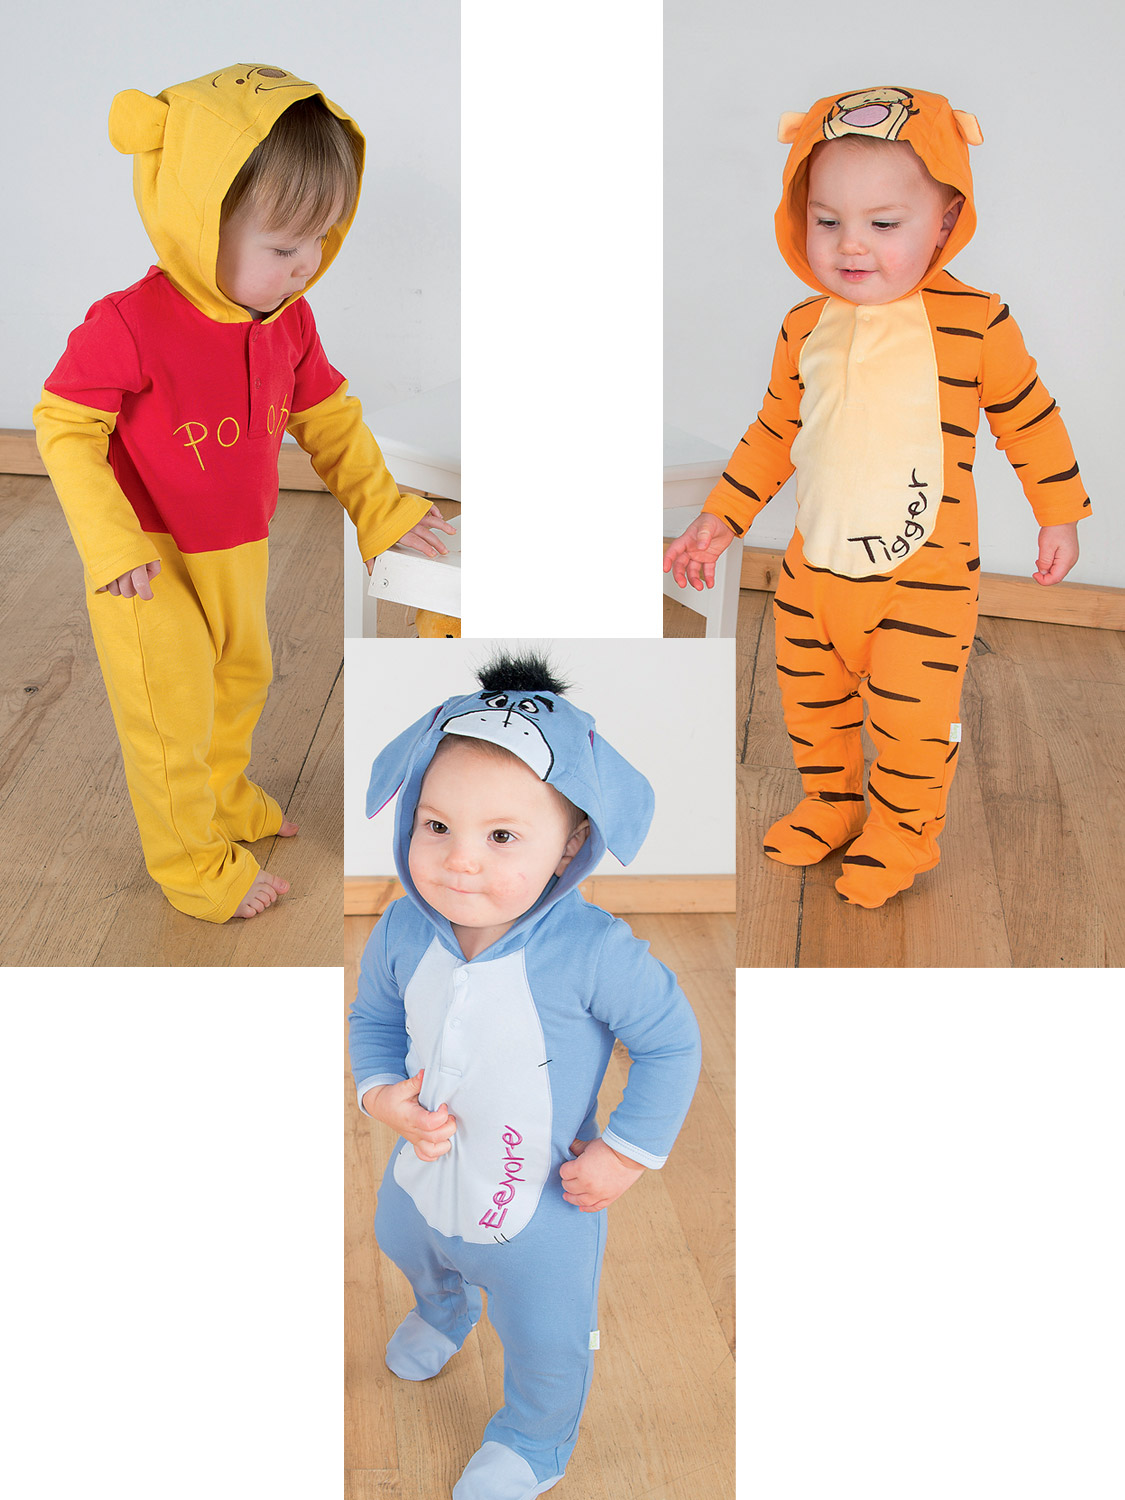 774860f61043 Details about Baby Toddler Disney Winnie the Pooh Romper Eeyore Fancy Dress  Tigger Costume Kid